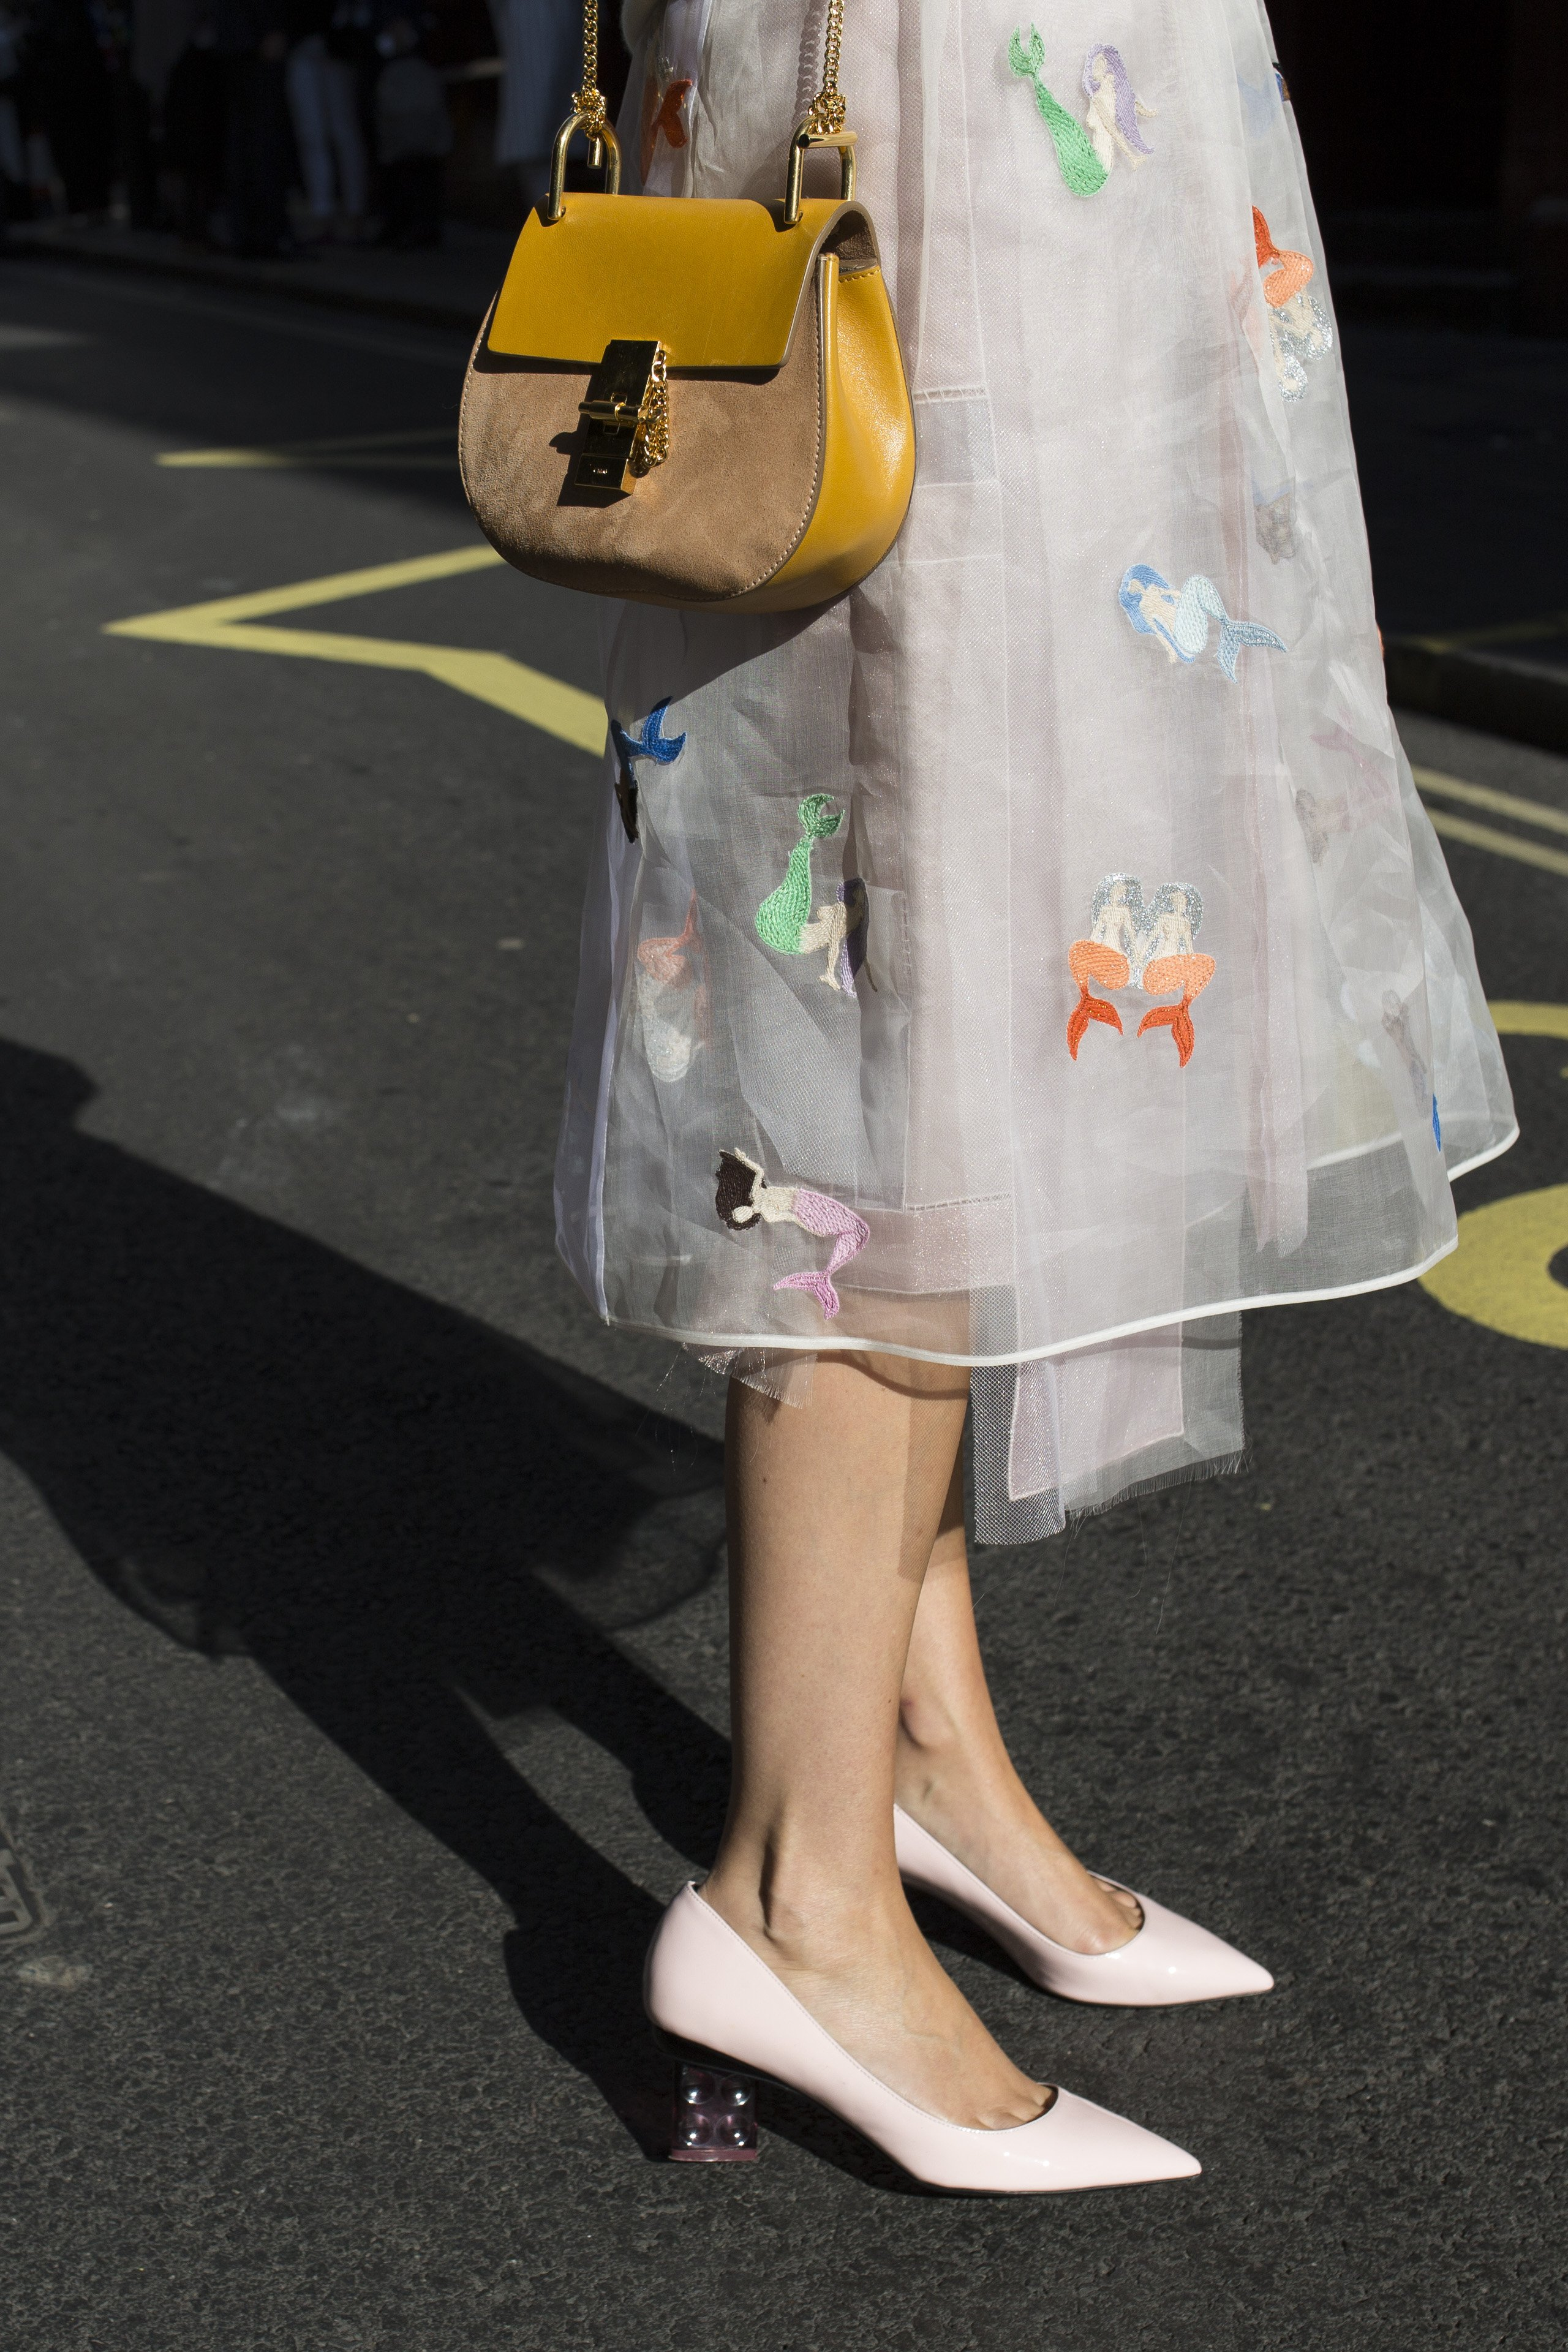 Martha Ward attending London Fashion Week SS16, London, held at the Brewer Street Carpark in Soho.  She wears an Alex Lewis skirt, Nicholas Kirkwood shoes, Zan Zan sunglasses with a Chloe bag., Image: 259265710, License: Rights-managed, Restrictions: NONE, Model Release: no, Credit line: Profimedia, Press Association